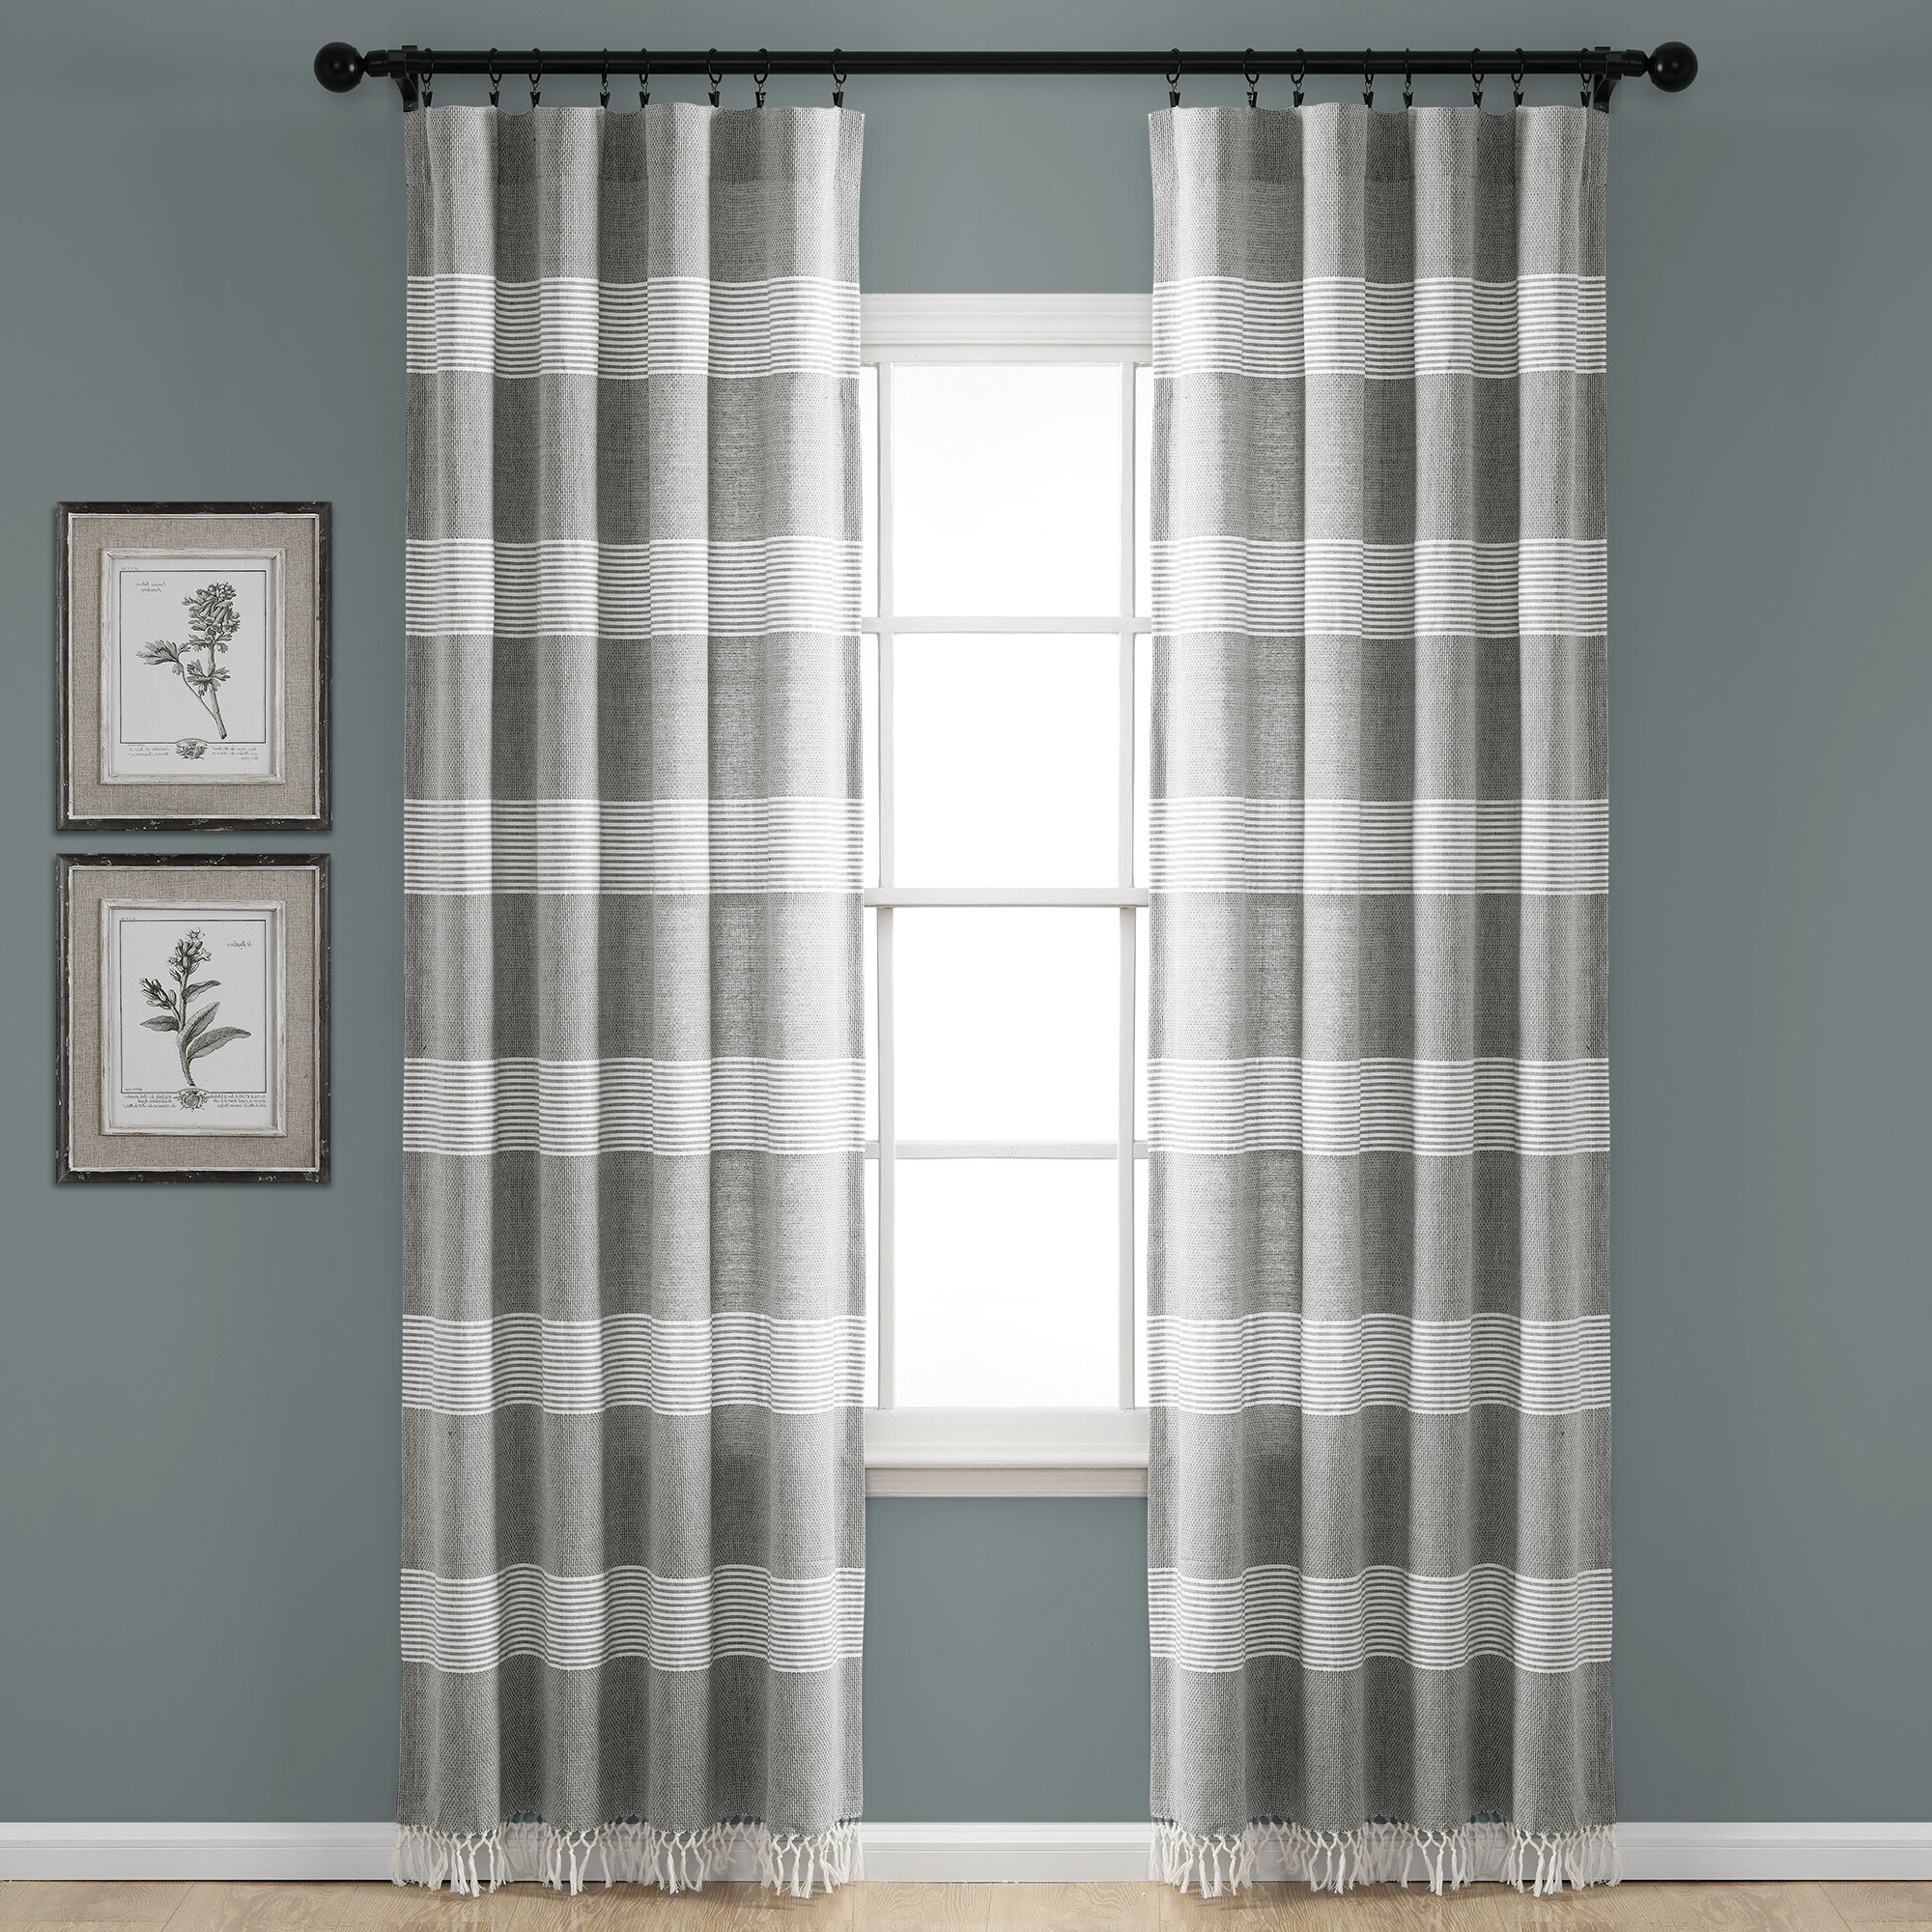 Famous Tassels Applique Sheer Rod Pocket Top Curtain Panel Pairs With Regard To Rhys Tucker Yarn Dyed Knotted Tassel Window Striped Rod Pocket Curtain  Panels (View 6 of 20)